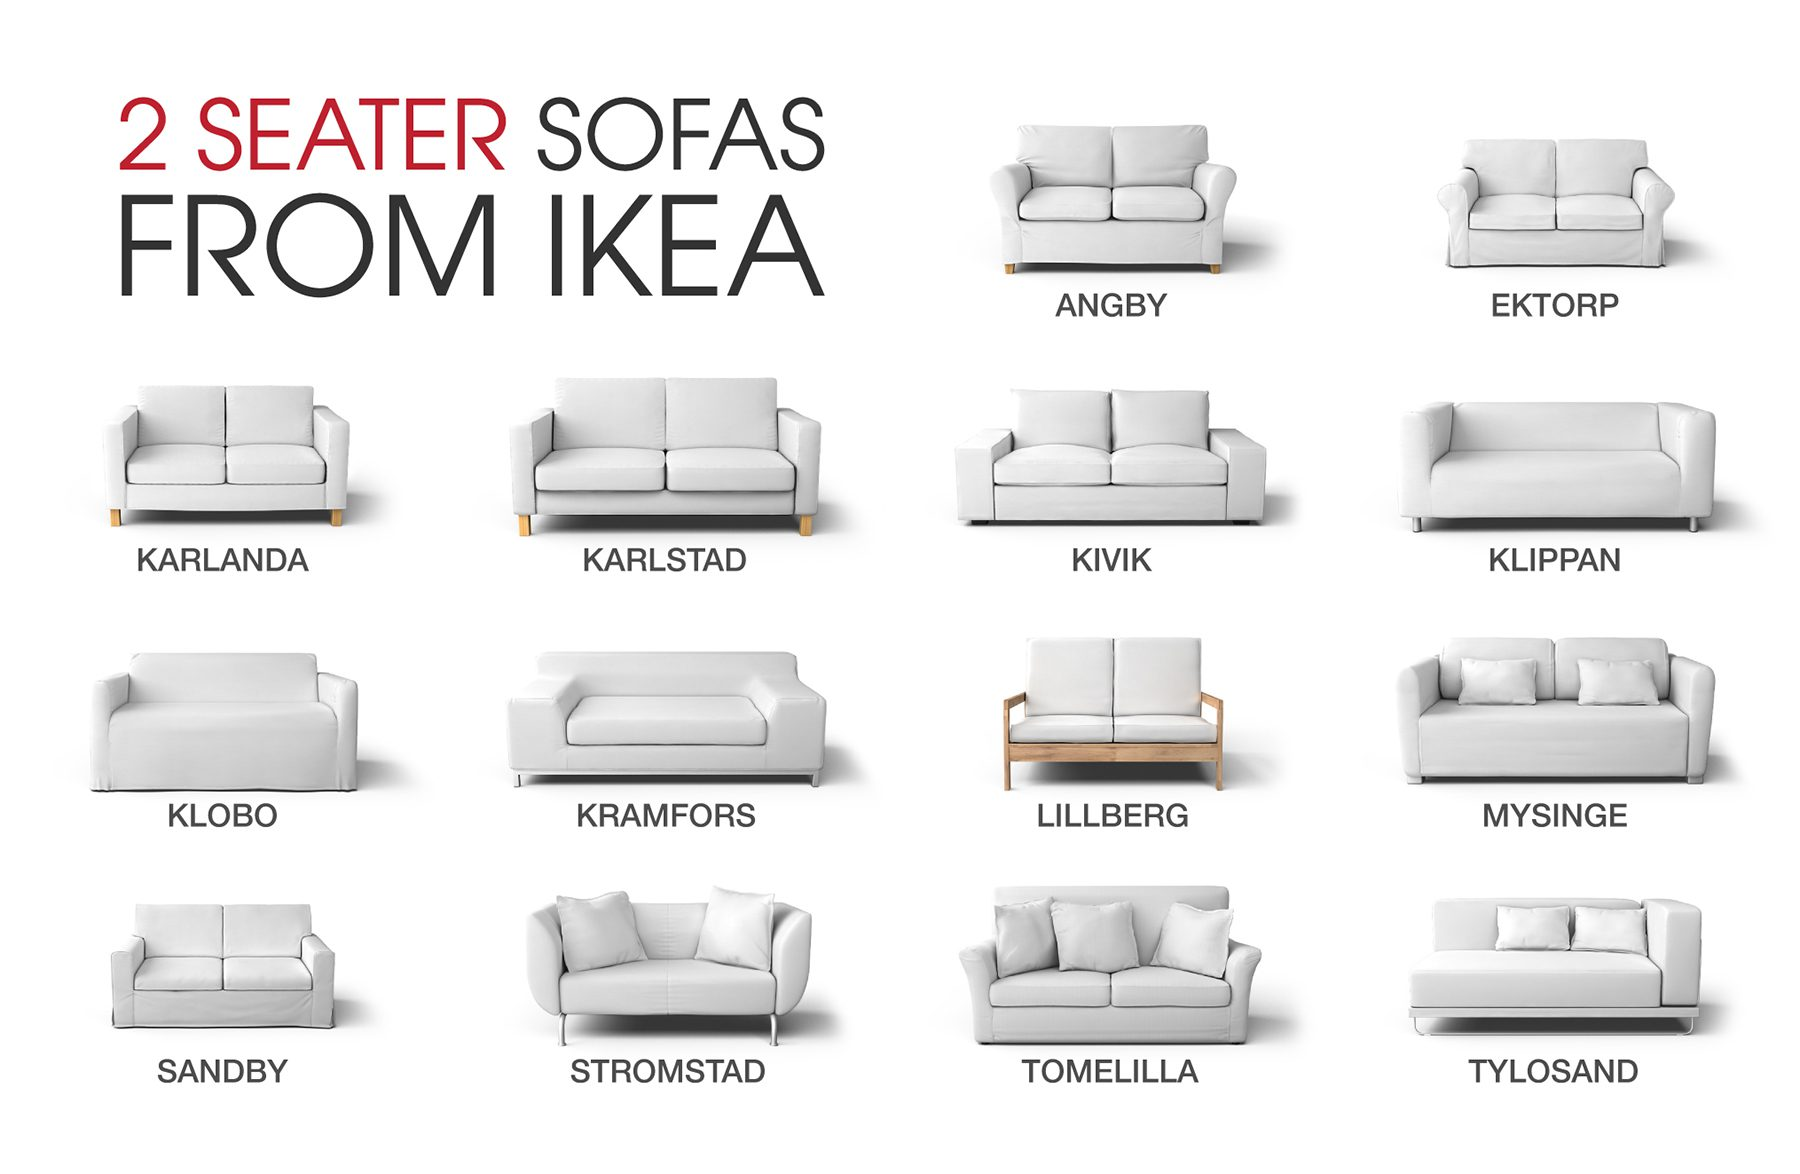 Which Ikea 2 Seater Sofa Is This